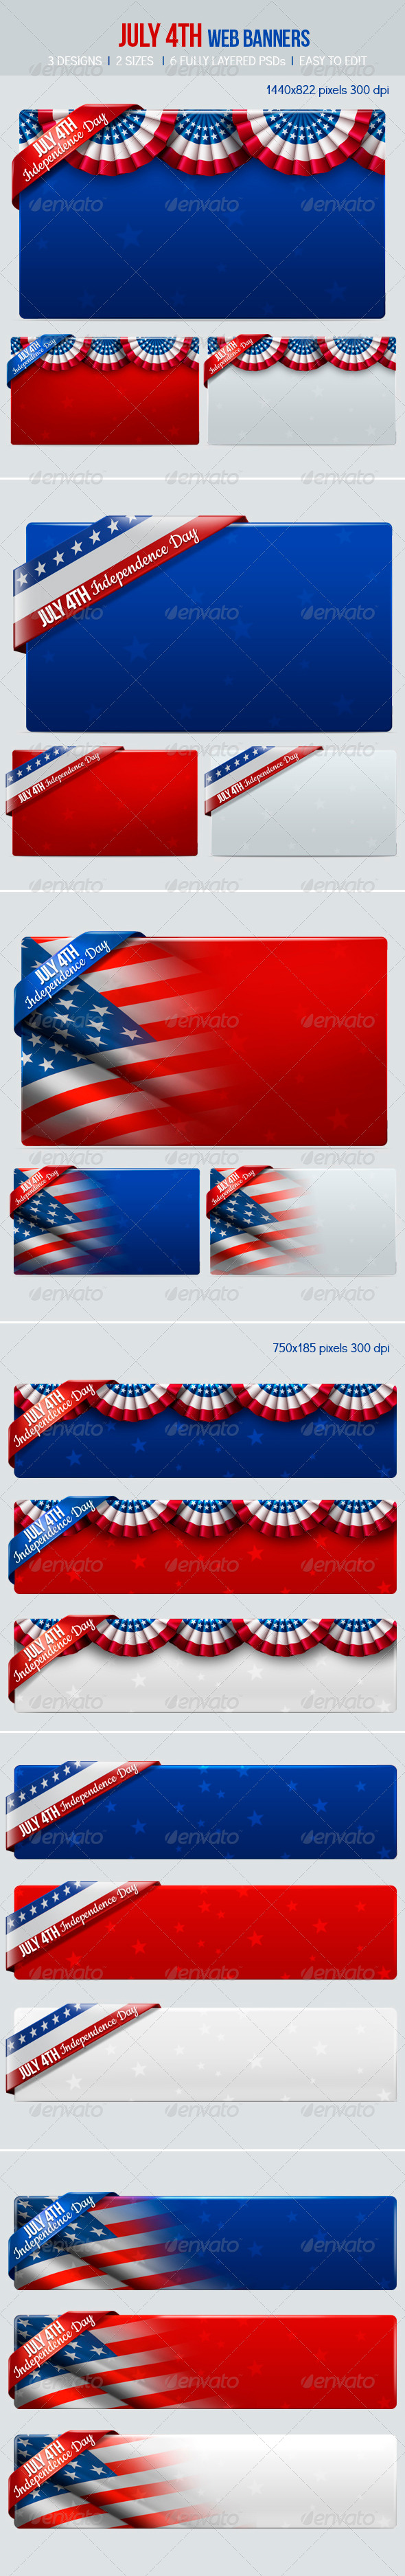 July 4th Web Banners - Banners & Ads Web Elements